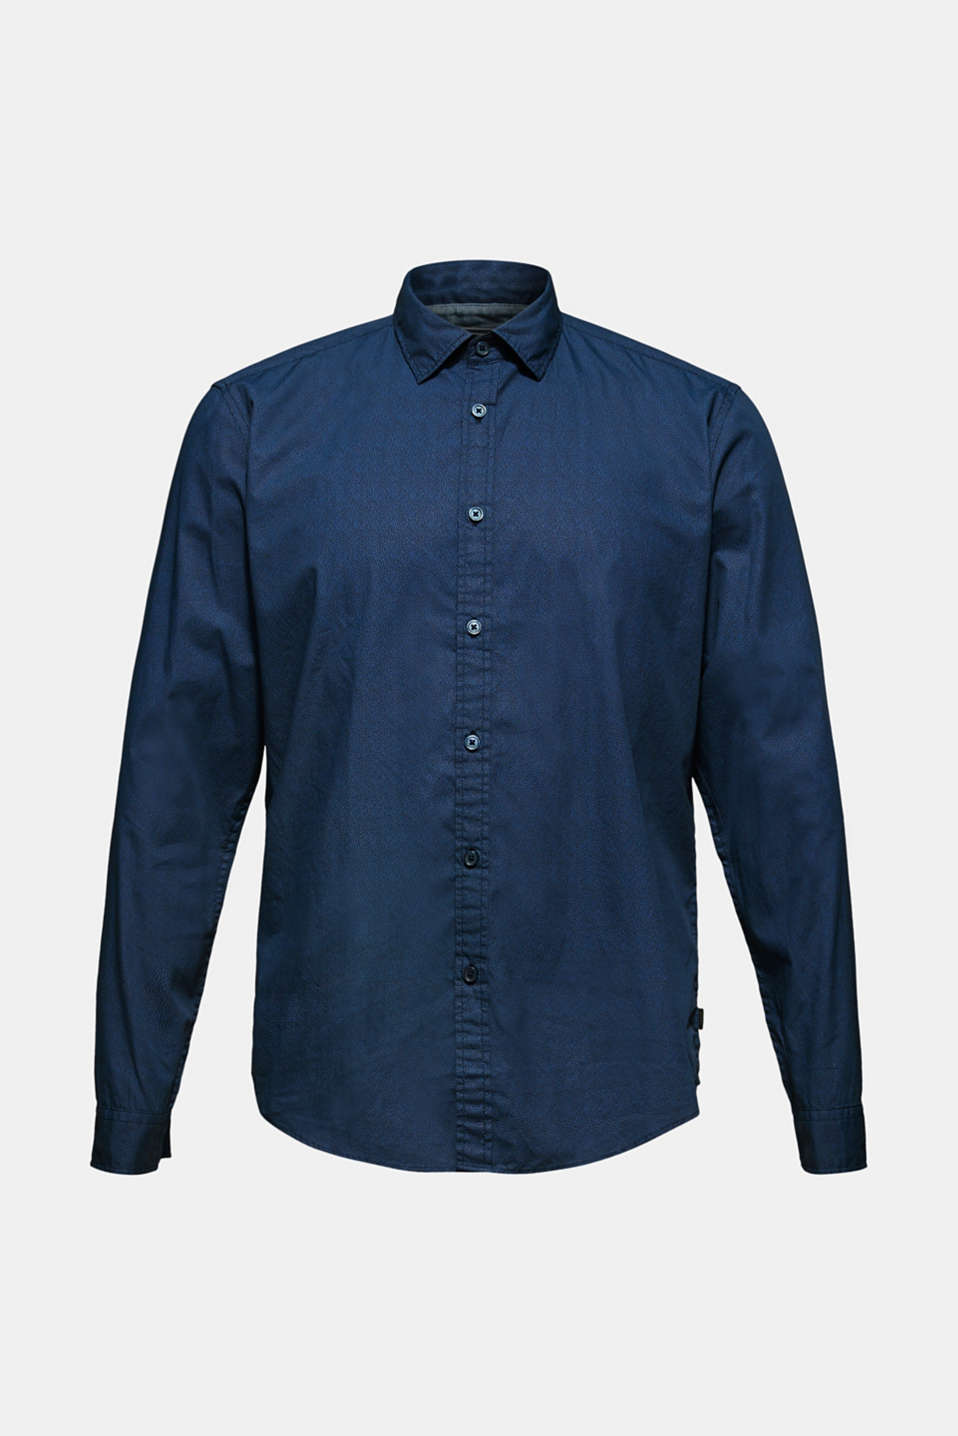 Shirt with micro print, 100% cotton, NAVY, detail image number 6